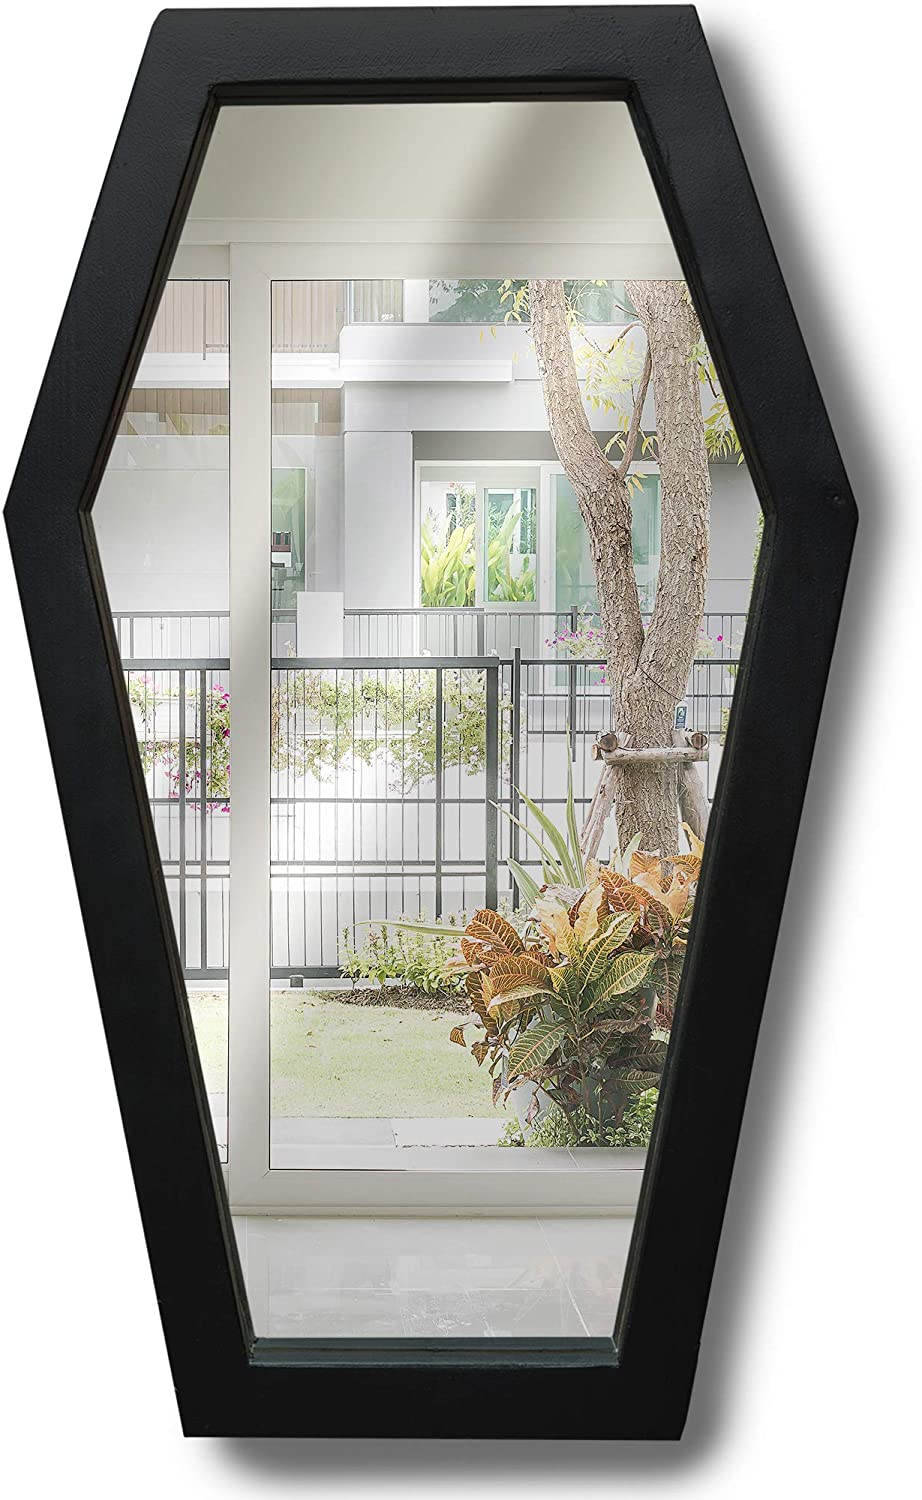 Heavy Rustic Coffin Mirror, Decent Wide Frame Matte Black Hexagon Mirror, Gothic Decor for Wall - Large and Sturdy - Weights About 3.5 Lbs, 21 Inches Tall